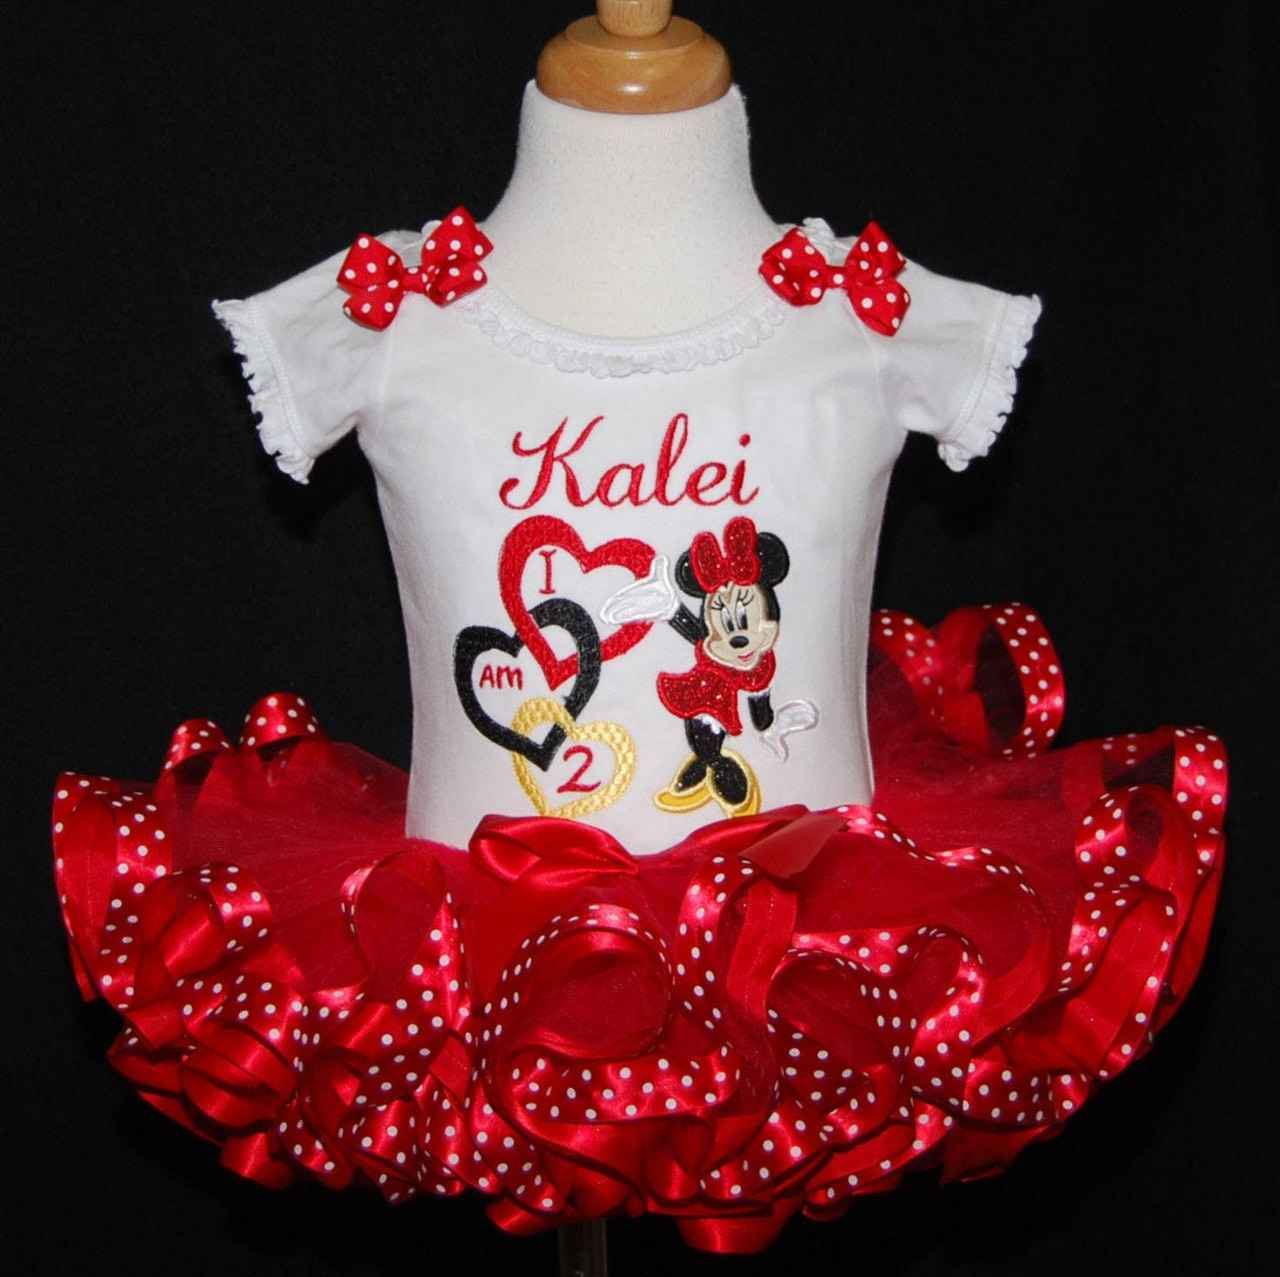 Minnie Mouse birthday outfit 2nd birthday outfit toddler birthday tutu dress minnie mouse birthday 2nd birthday dress in red